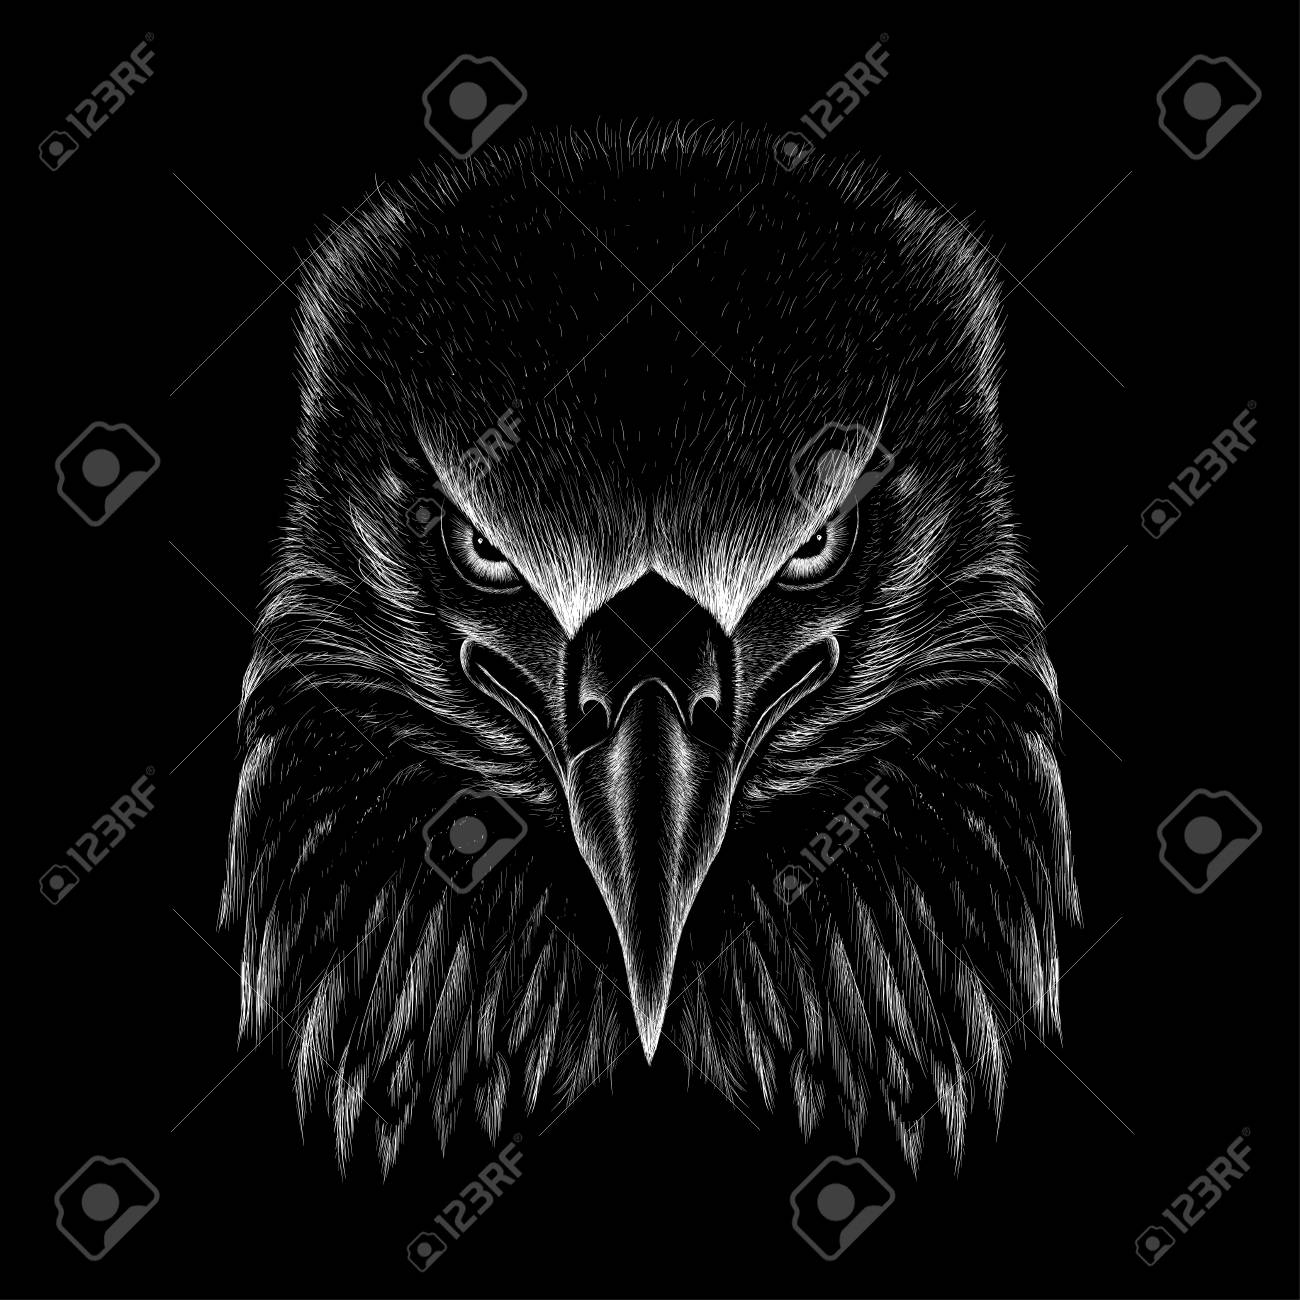 The Vector eagle for T-shirt design or outwear. Hunting style eagle background. - 104787041